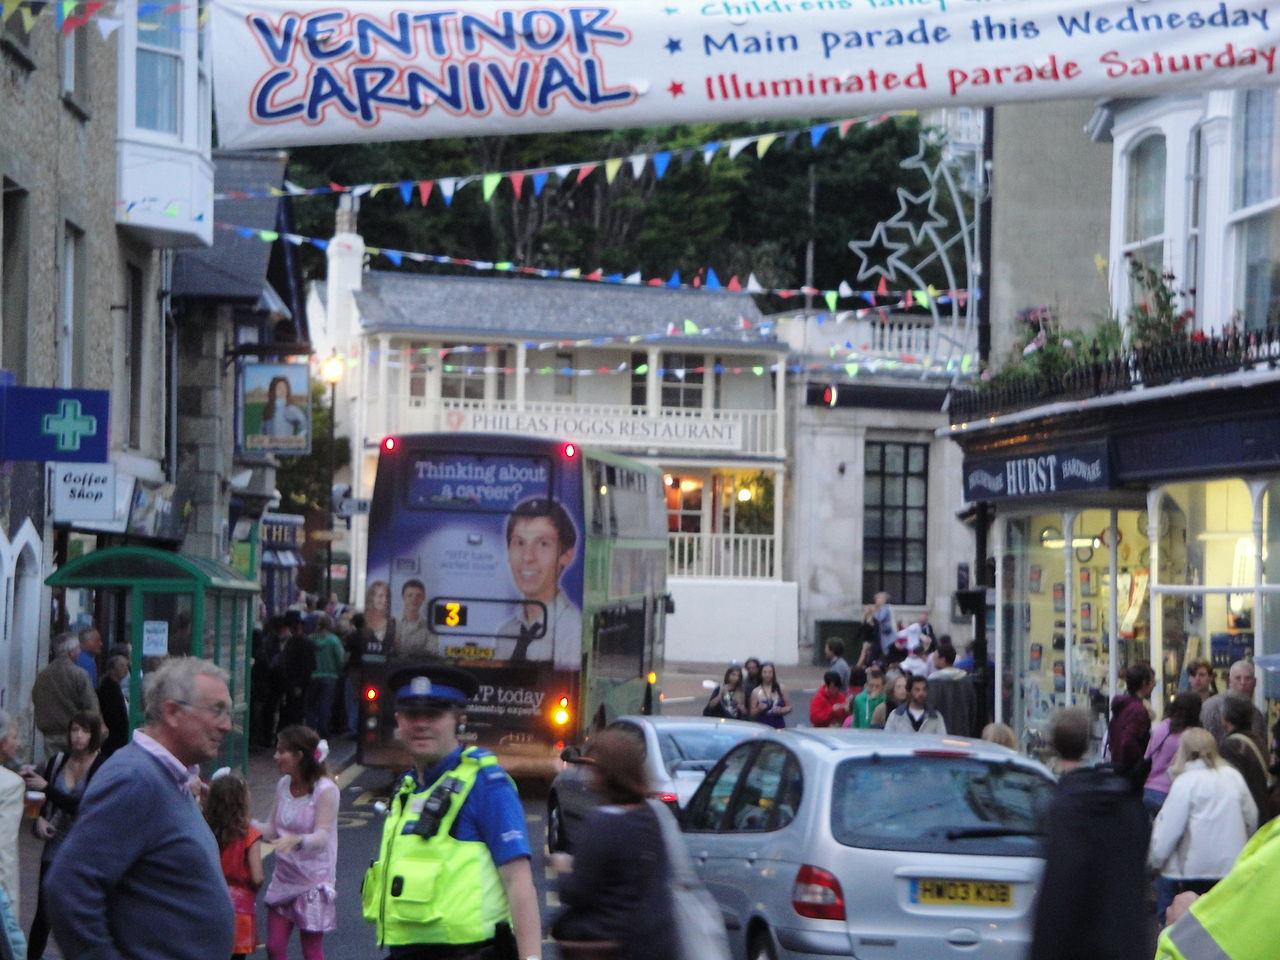 File:Ventnor High Street after Carnival 2011 JPG - Wikimedia Commons